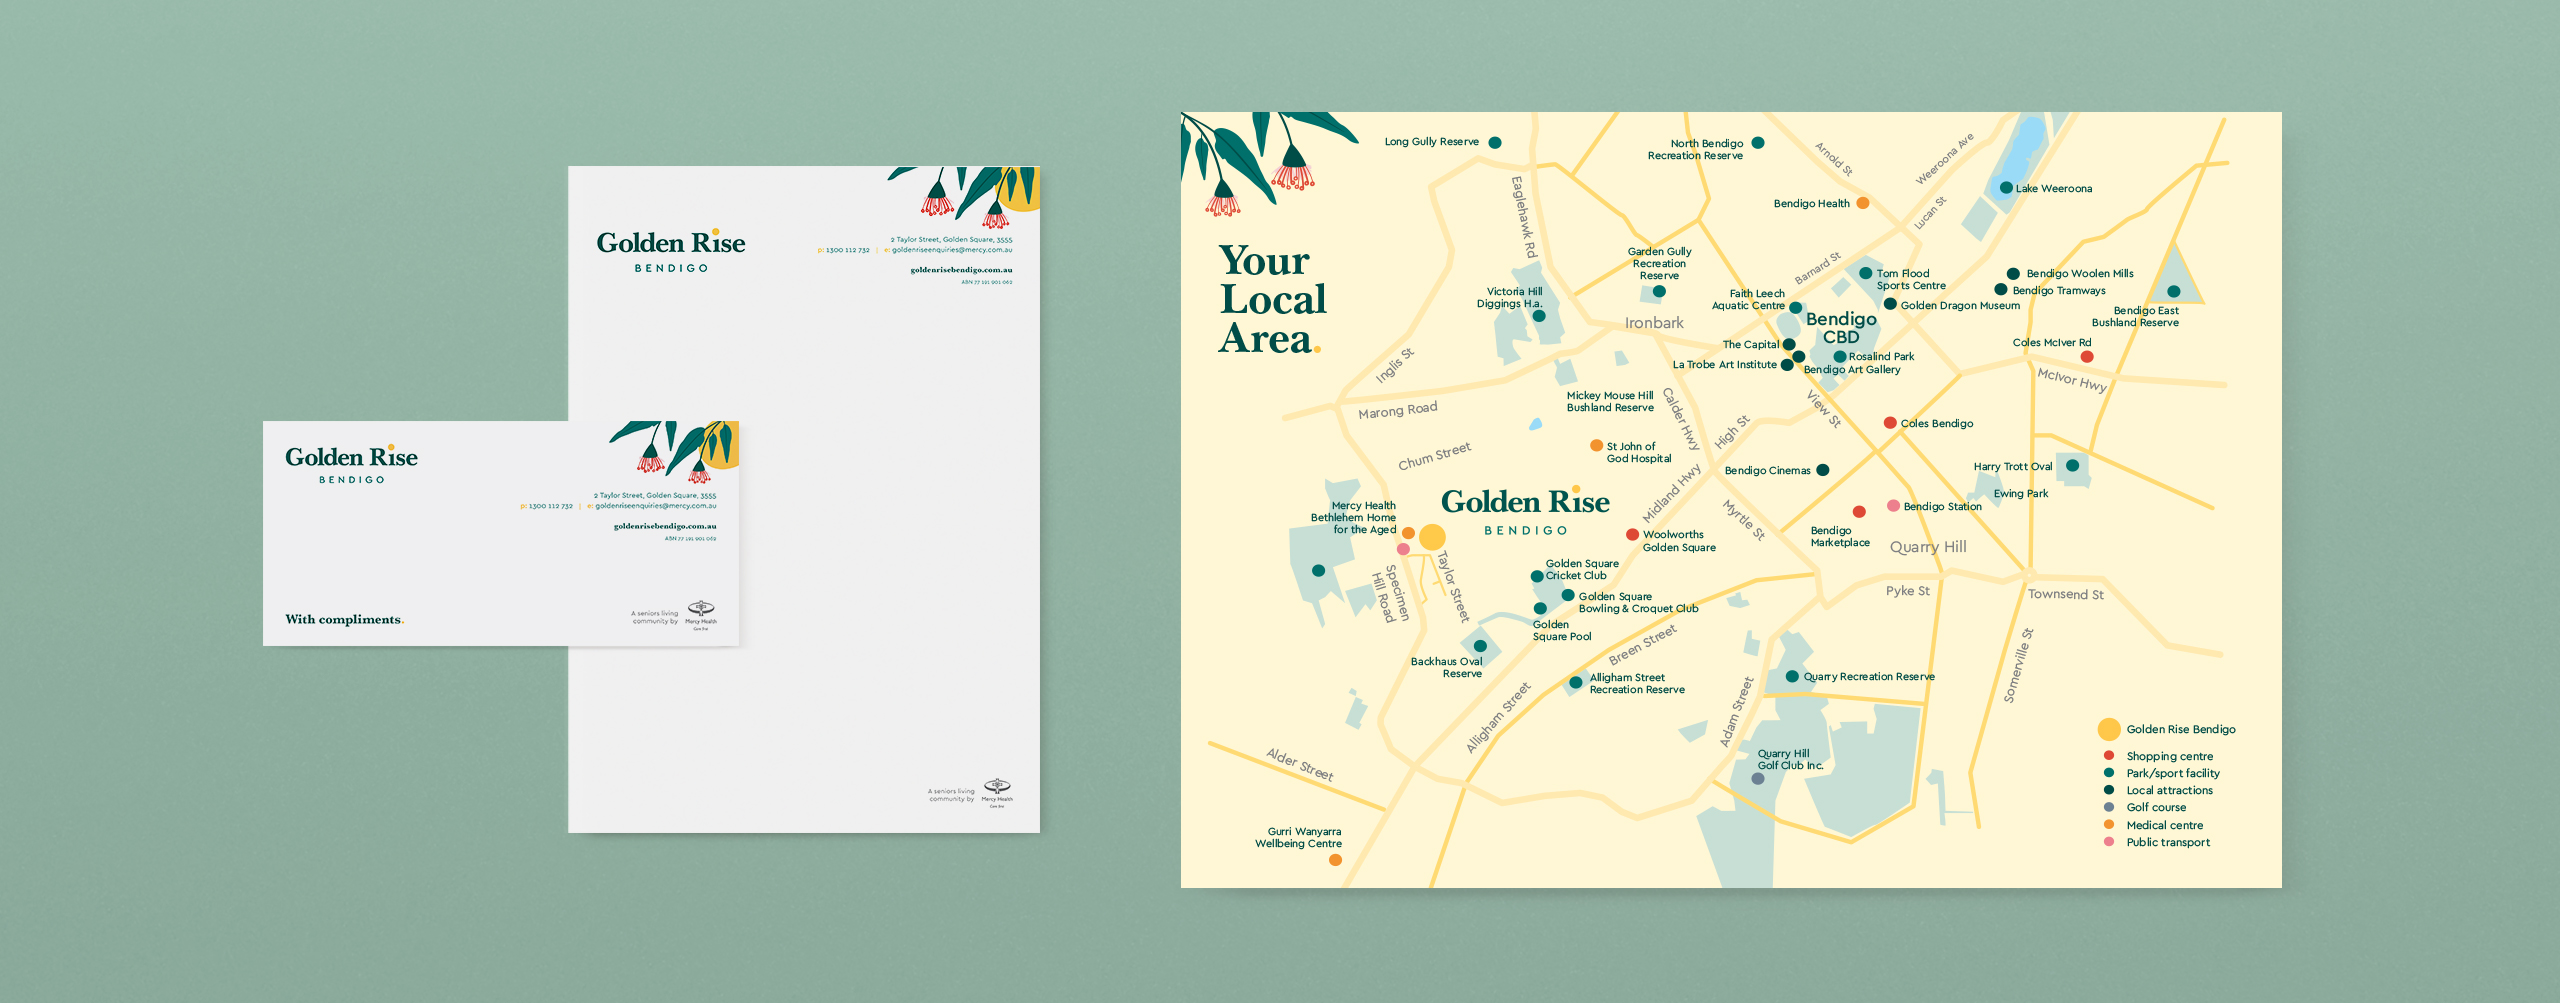 Mercy Health Golden Rise Property Marketing Collateral Stationery Local Area Map